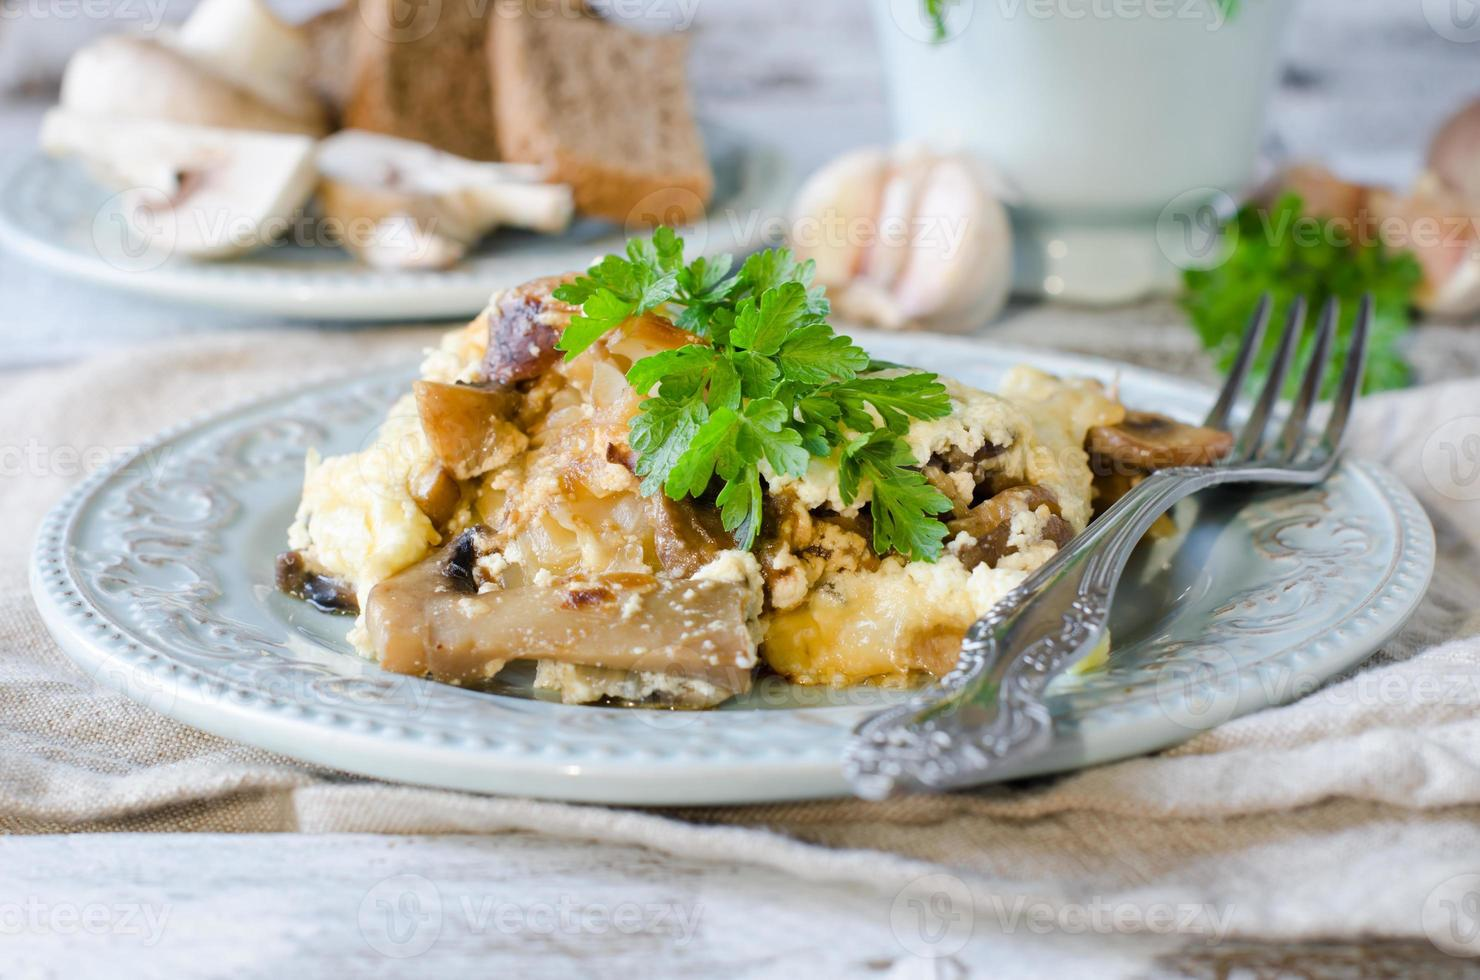 Cabbage and mushrooms baked with cheese photo